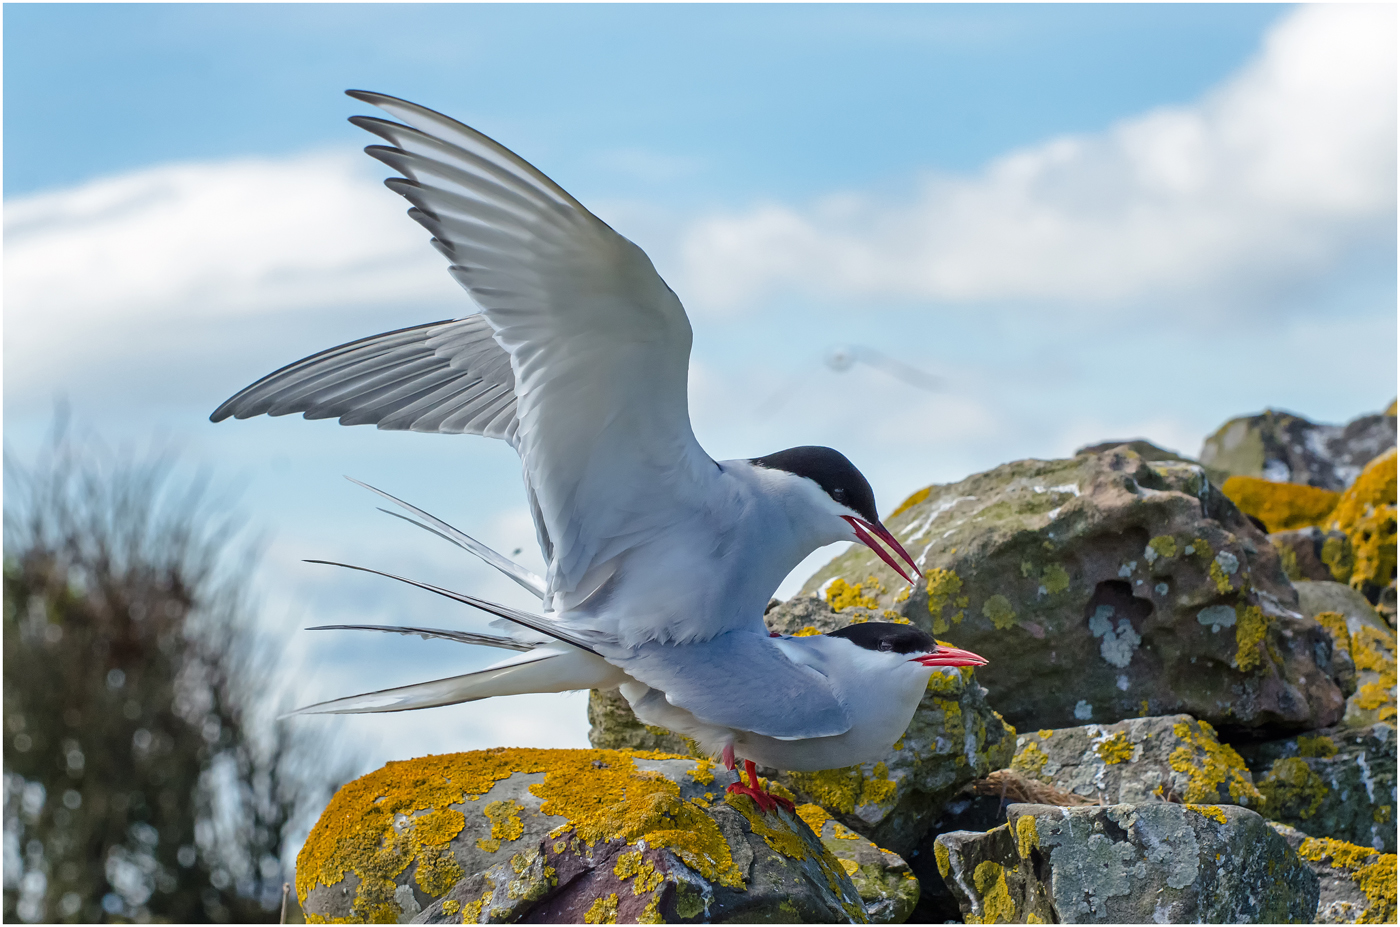 Mating Artic Terns MIck Stainthorpe